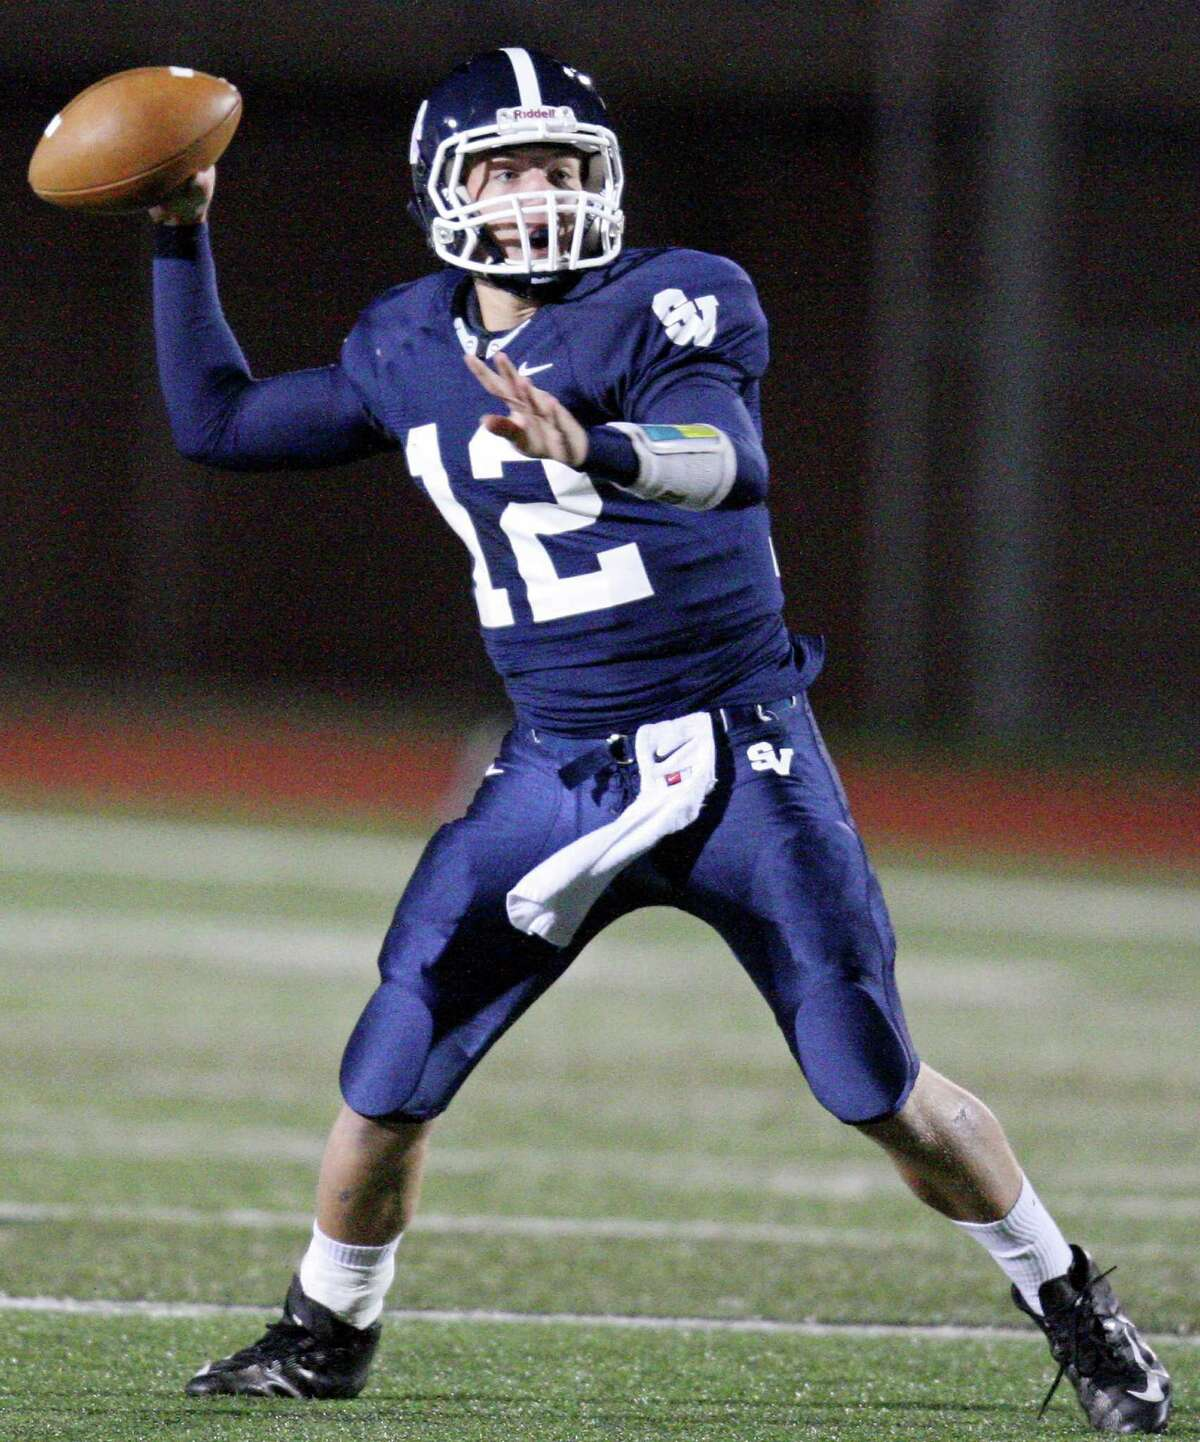 Smithson Valley's Garrett Smith passes against New Braunfels Canyon during first half action Friday Oct. 26, 2012 at Ranger Stadium in Spring Branch, Tx.